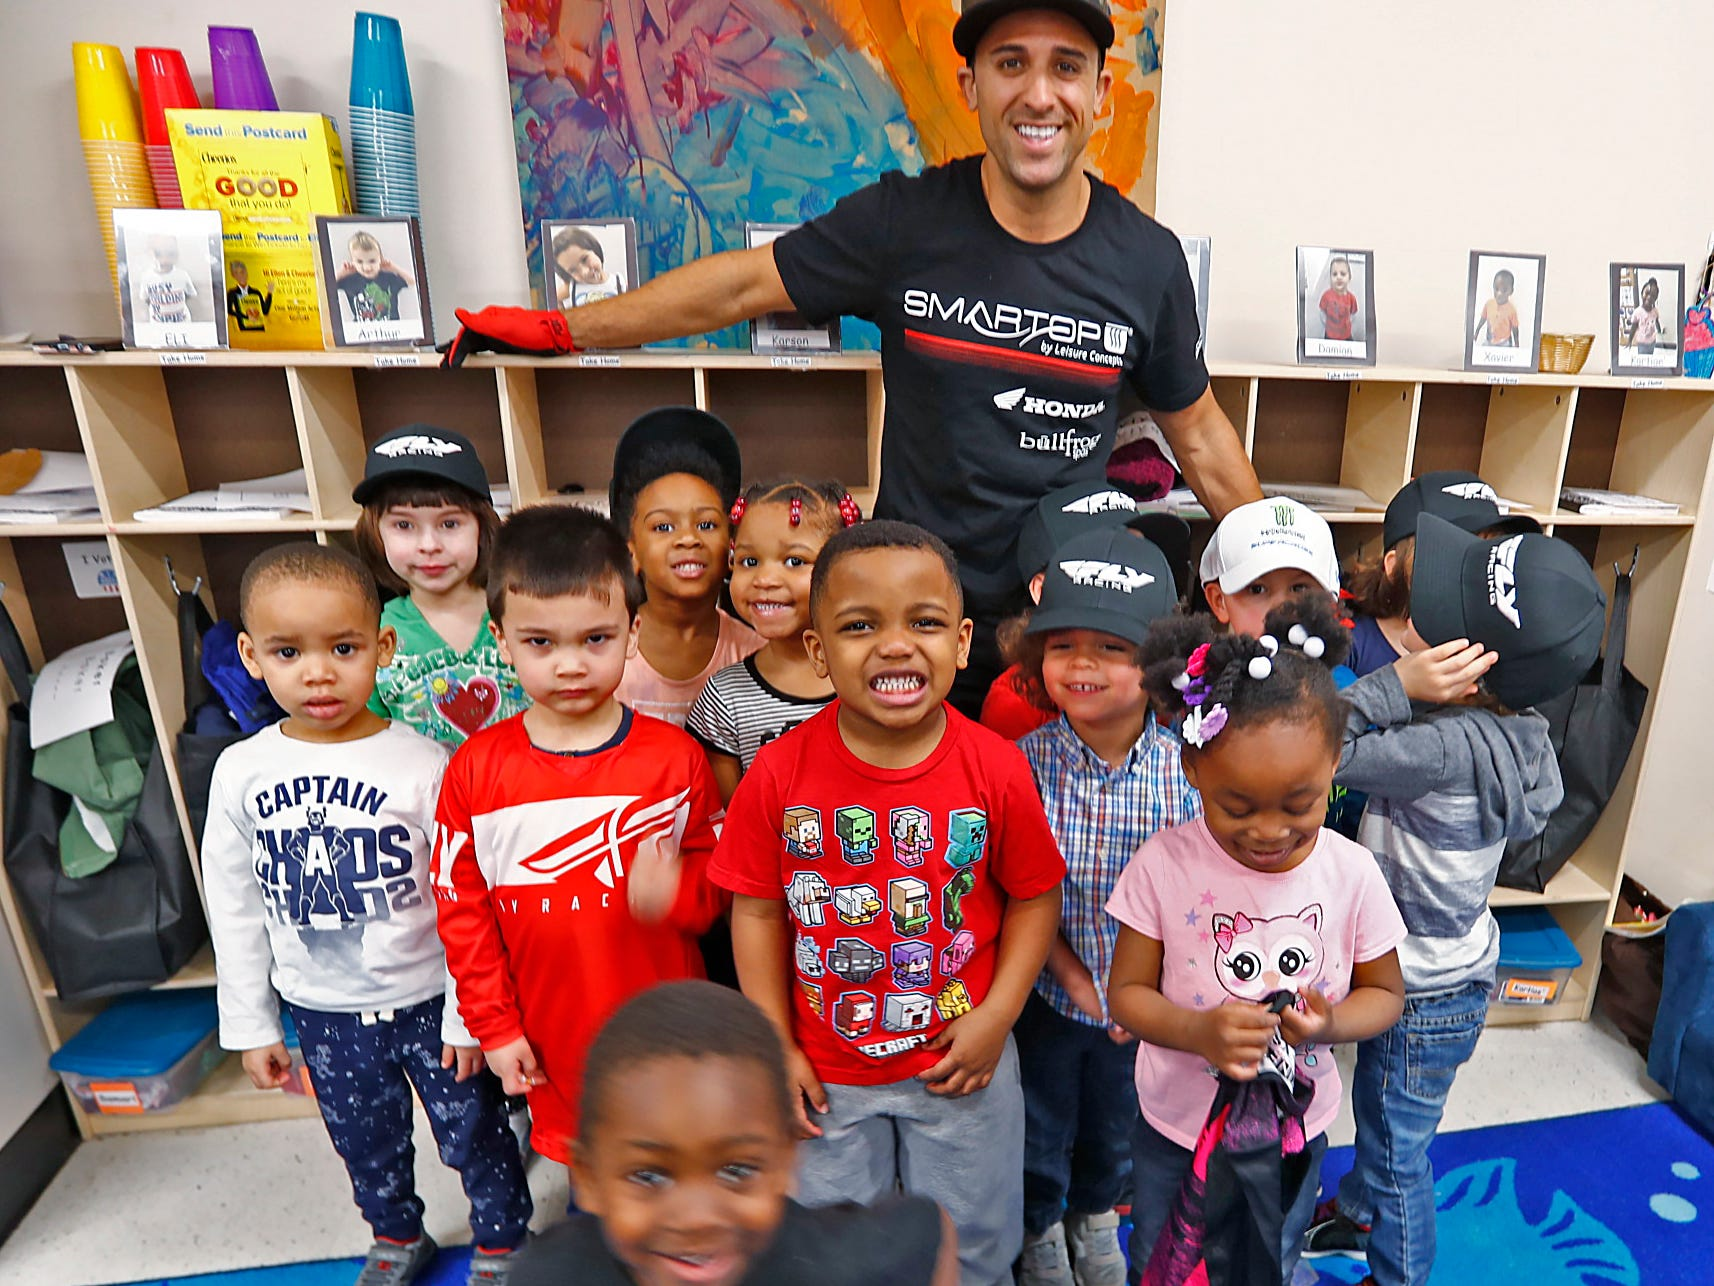 Supercross racer Mike Alessi poses for a photo while visiting with kids at Day Early Learning Center, Thursday, March 14, 2019.  Alessi provided Supercross rider jerseys and hats for the kids and gave wagon rides, on a break before the upcoming Supercross race.